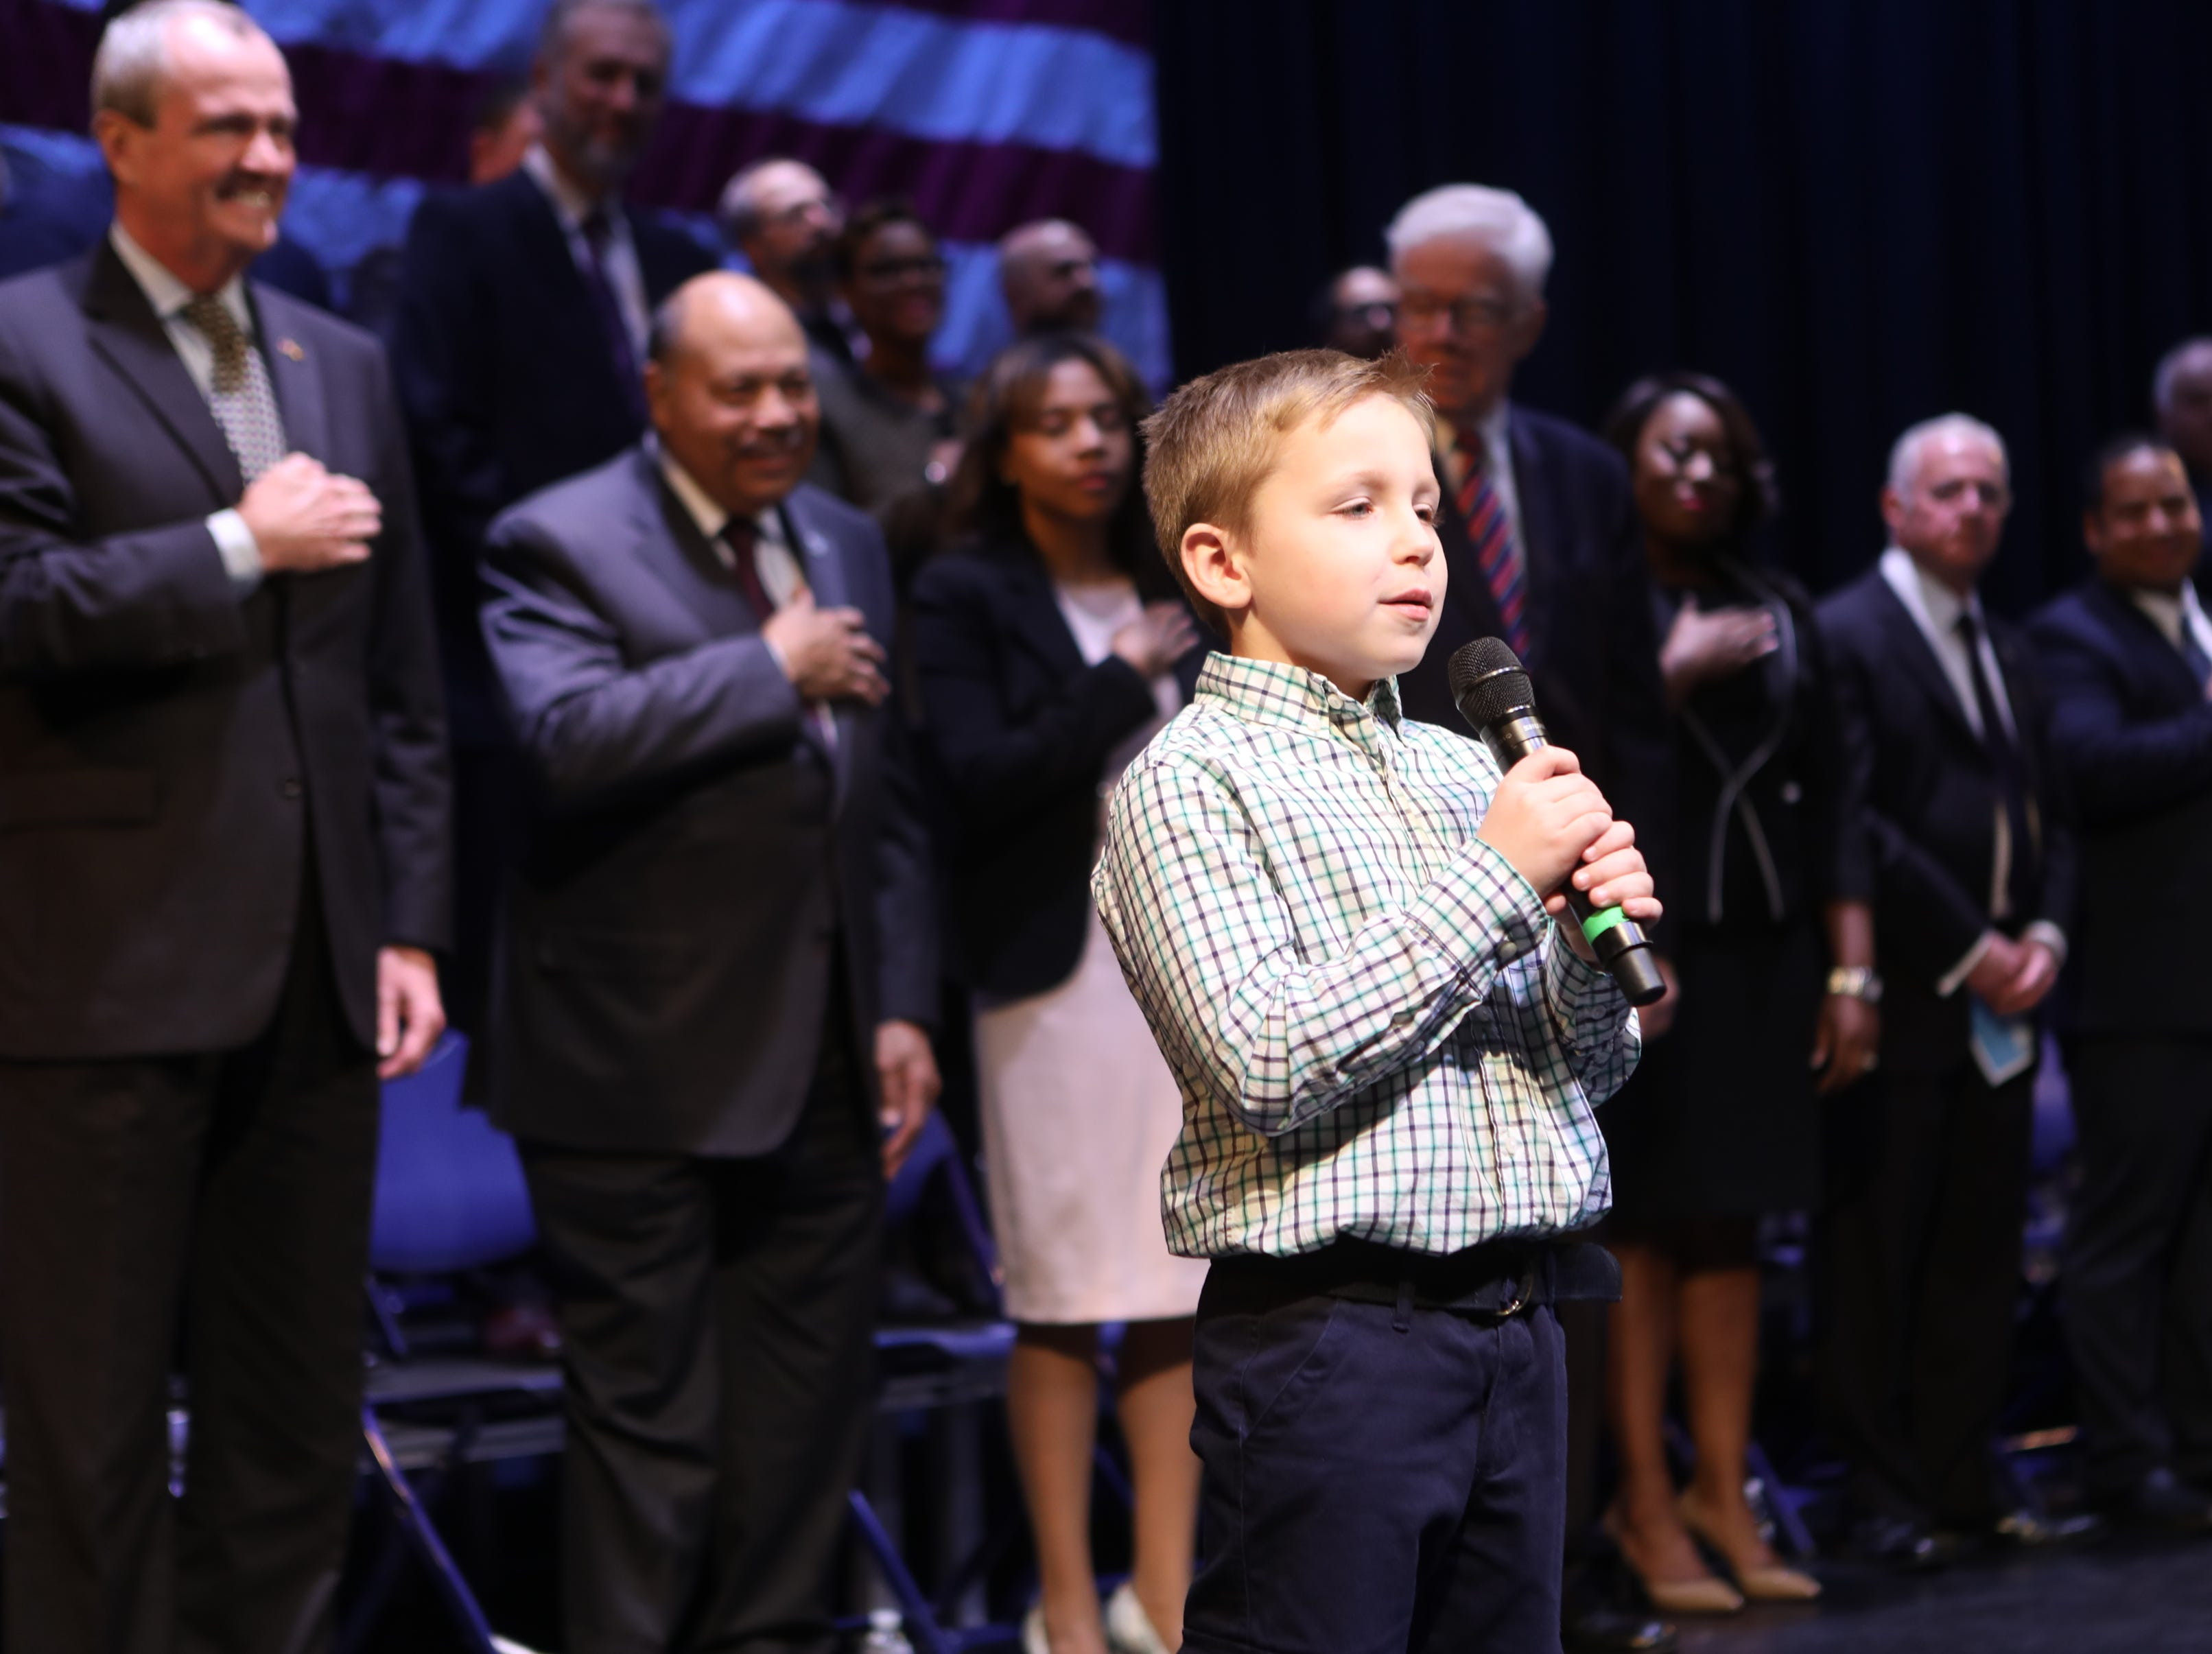 Mark Zalenski sings, 'America the Beautiful' at the County of Passaic County Clerk & Board of Chosen Freeholders Swearing In Ceremony in Wayne.  Tuesday, January 8,  2019